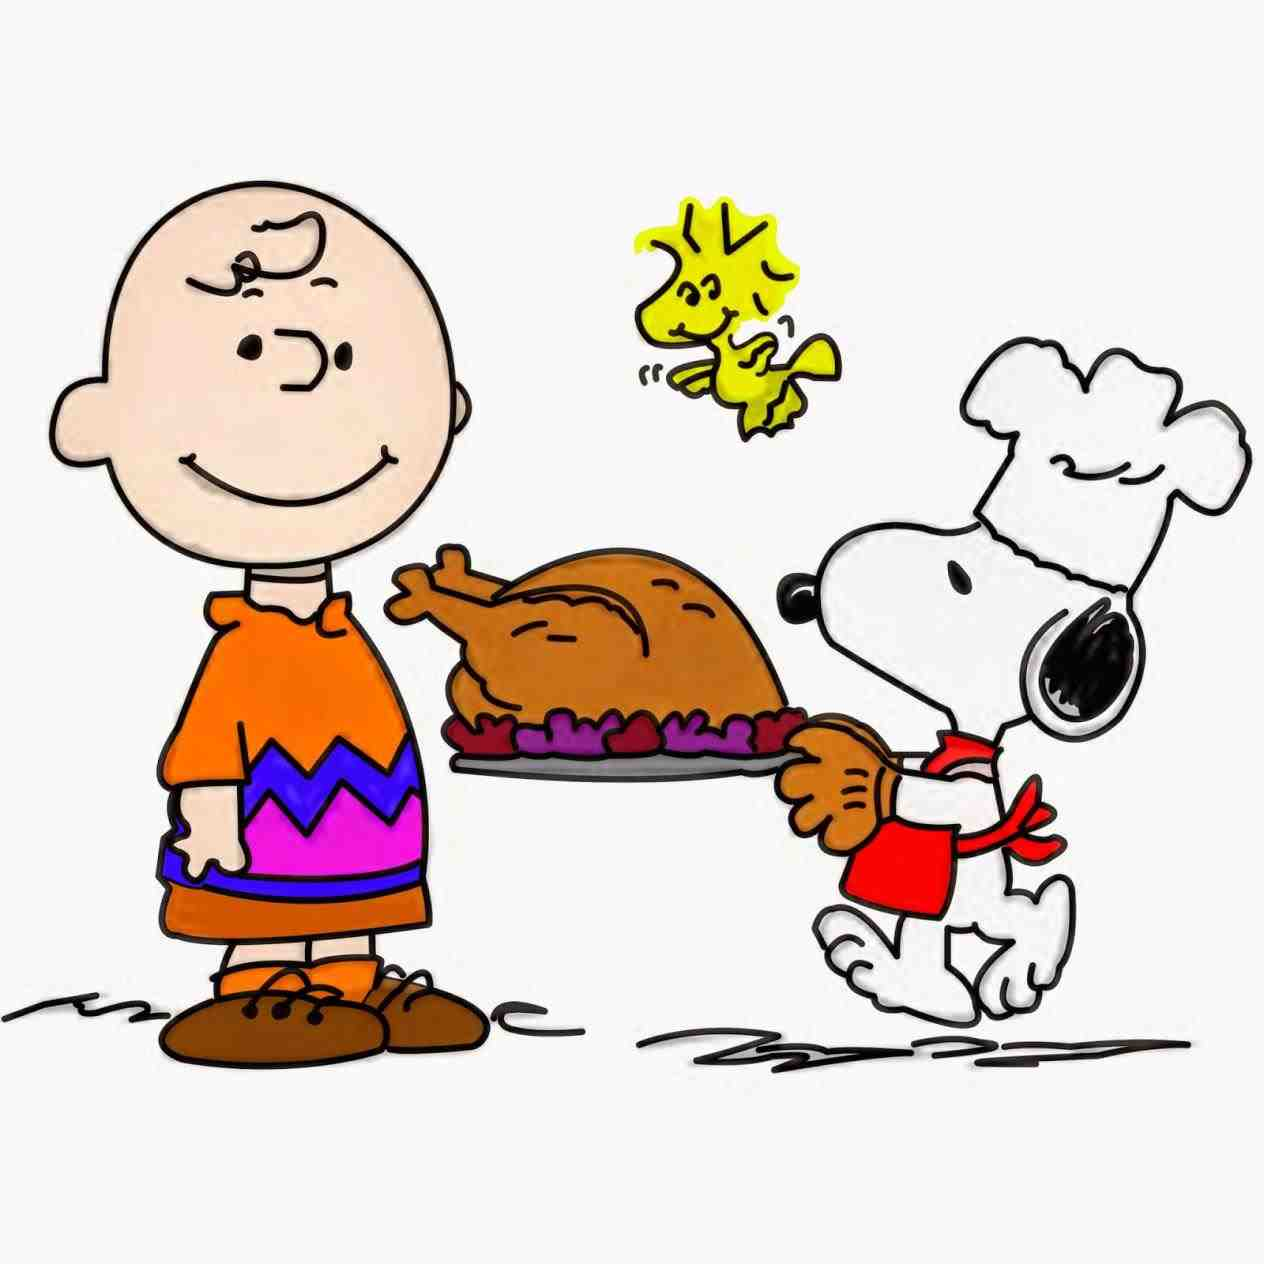 1264x1264 Wallpapers Charlie Brown Christmas Tree Clip Art Crazy